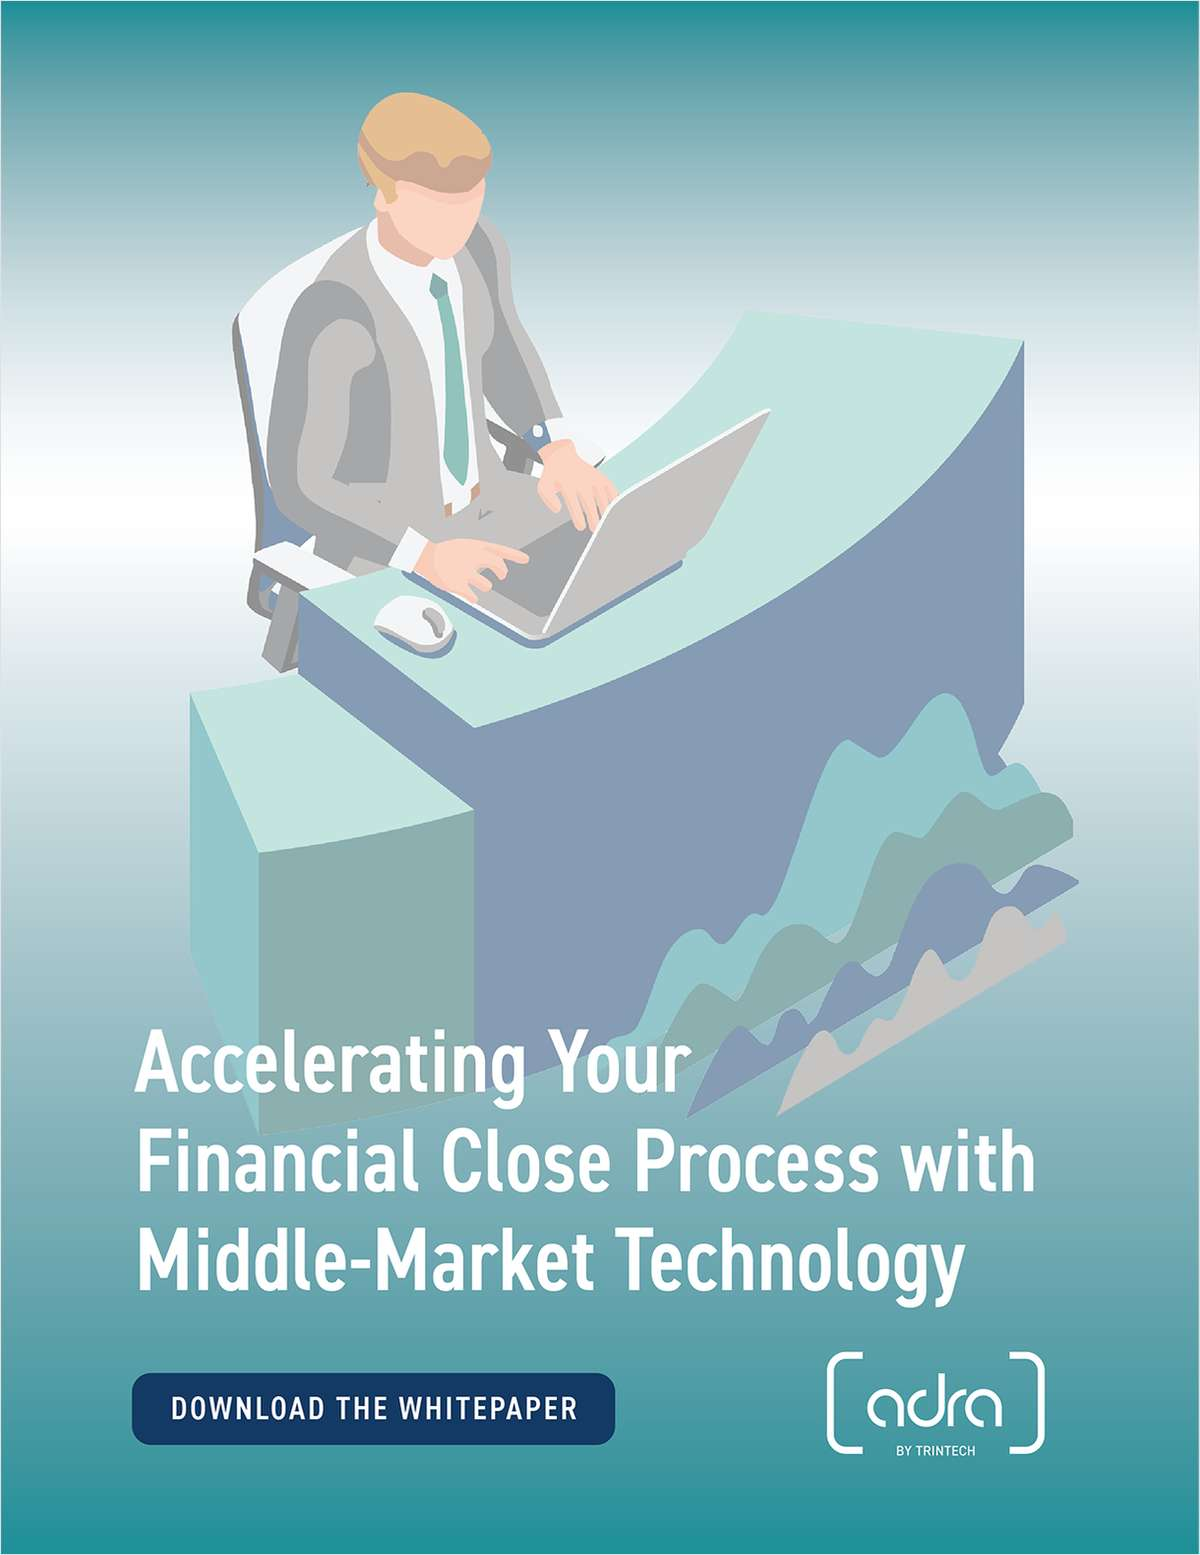 Accelerating Your Financial Close Process with Middle-Market Technology